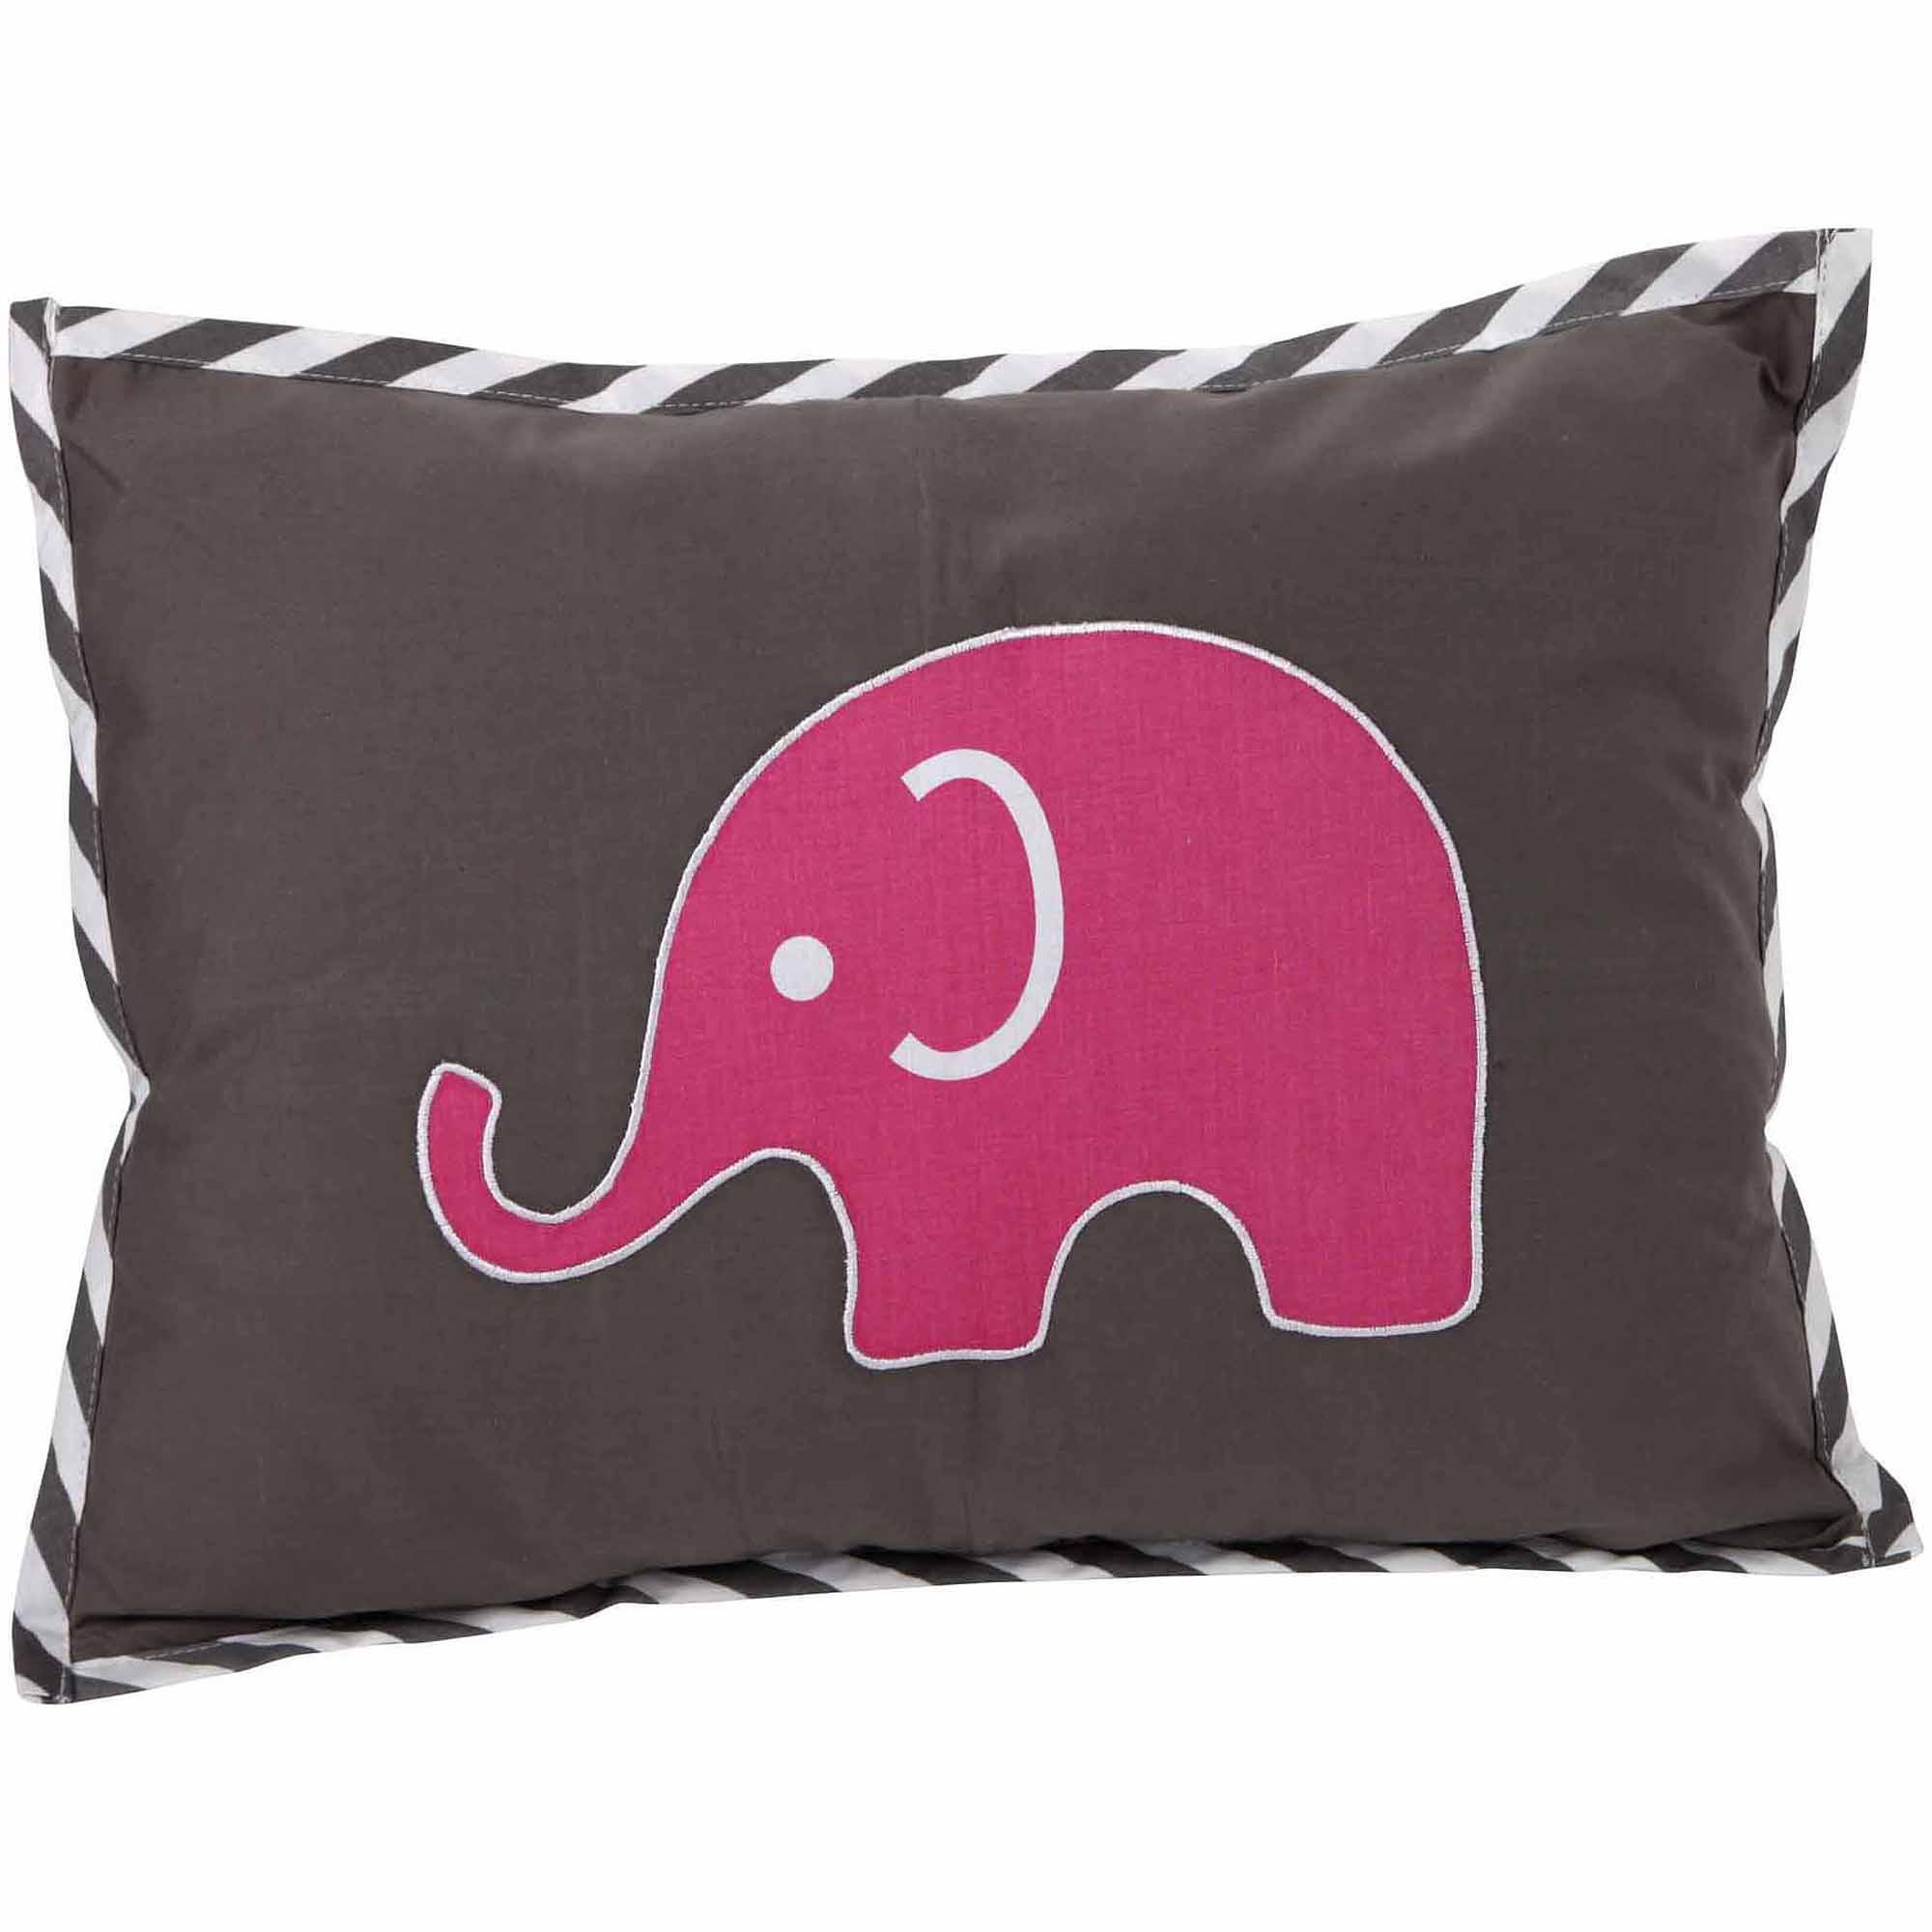 "Bacati Elephants Dec Pillow 12""x16"" with removable 100 % Cotton cover and polyfilled pillow insert, Pk/Gray"